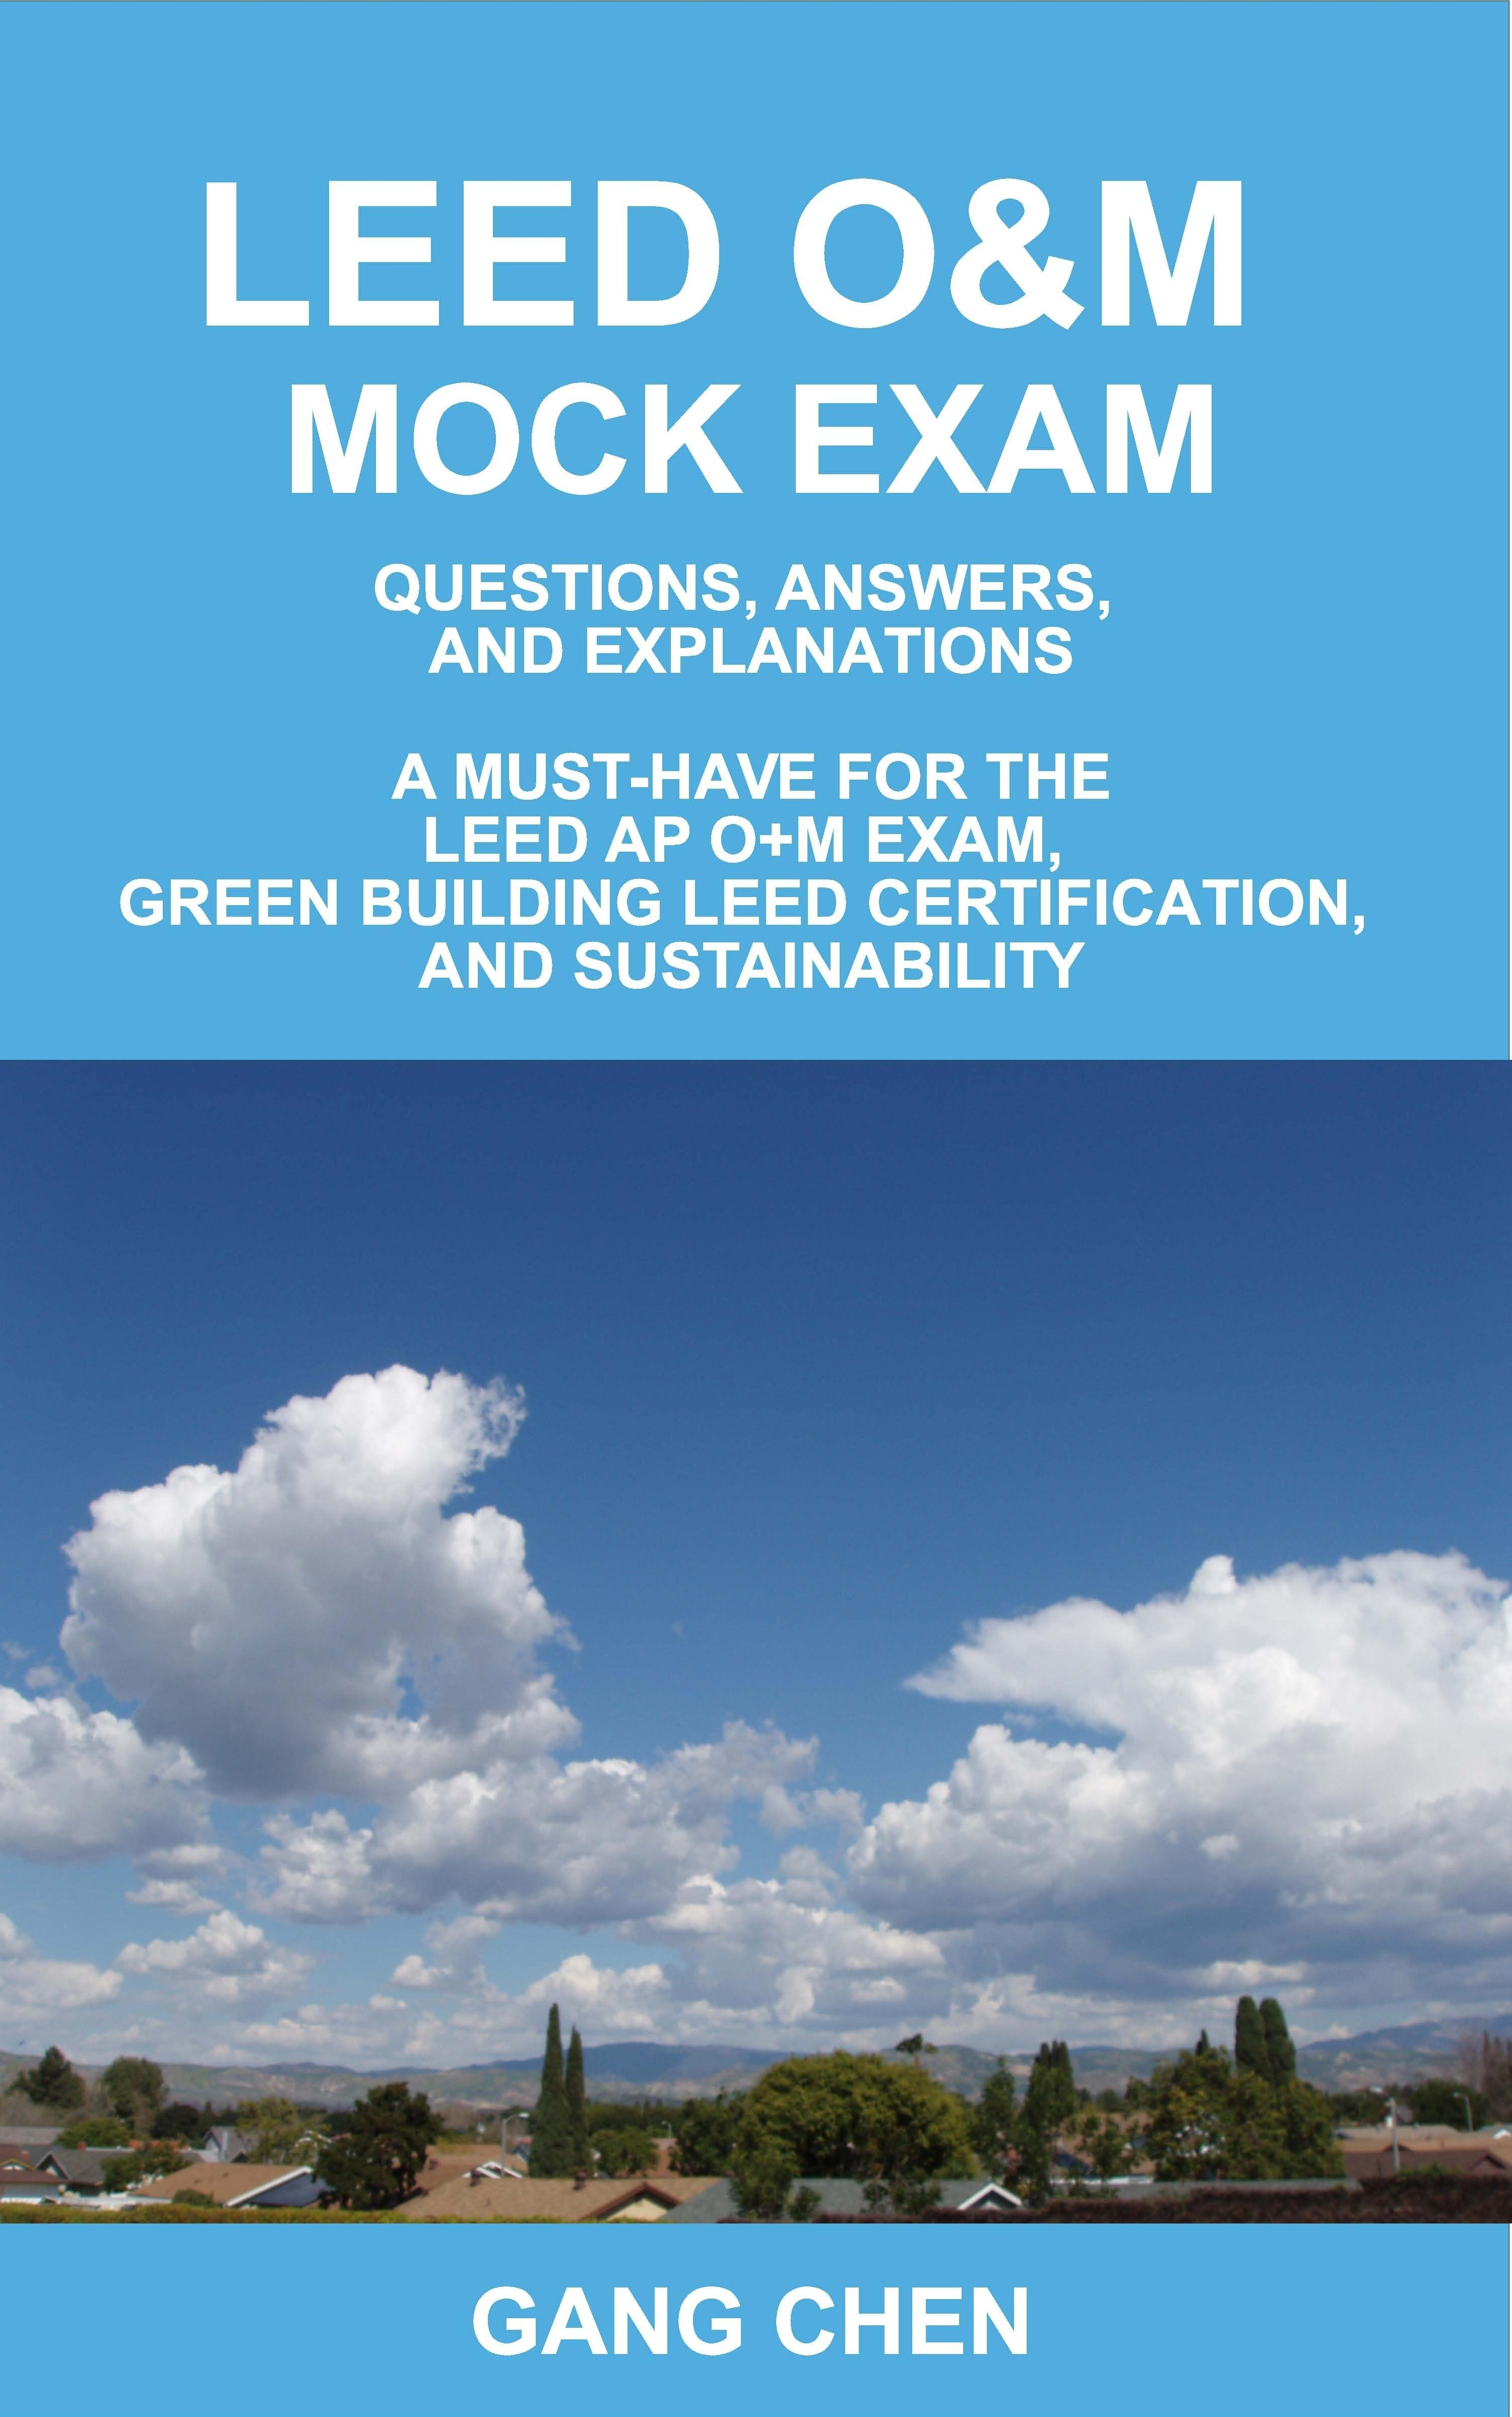 LEED O&M MOCK EXAM: Questions, Answers, and Explanations, A Must-Have for the LEED AP O+M Exam, Green Building LEED Certification, and Sustainability EB2370002912587